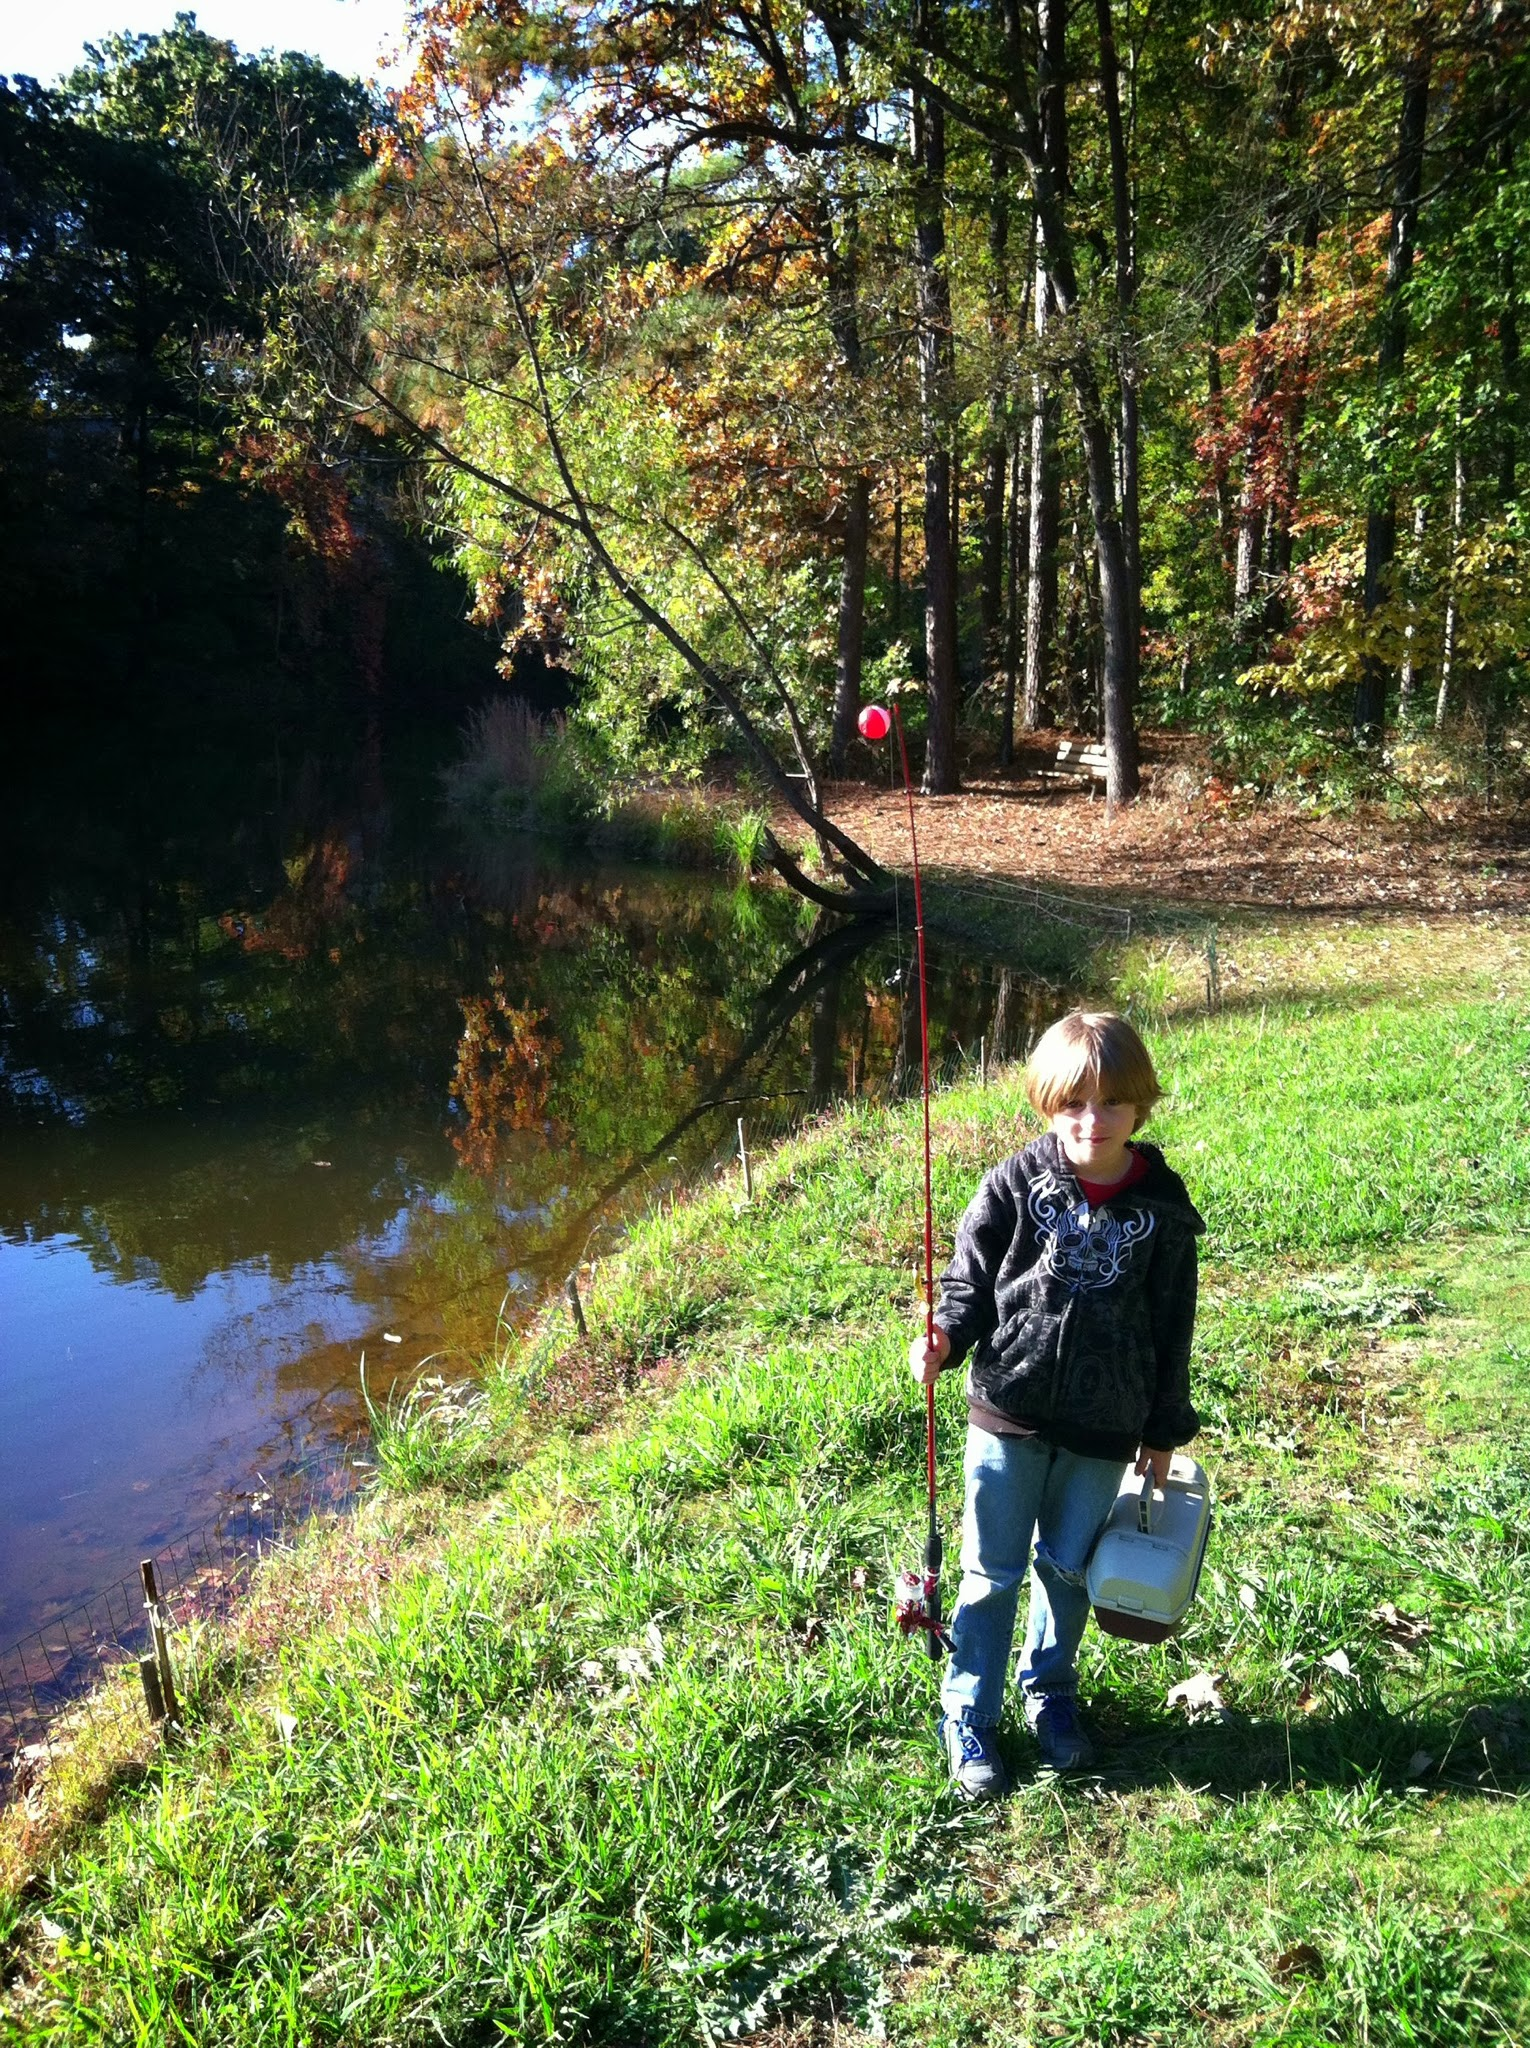 After the tool box, we went fishing -- also something we're learning together